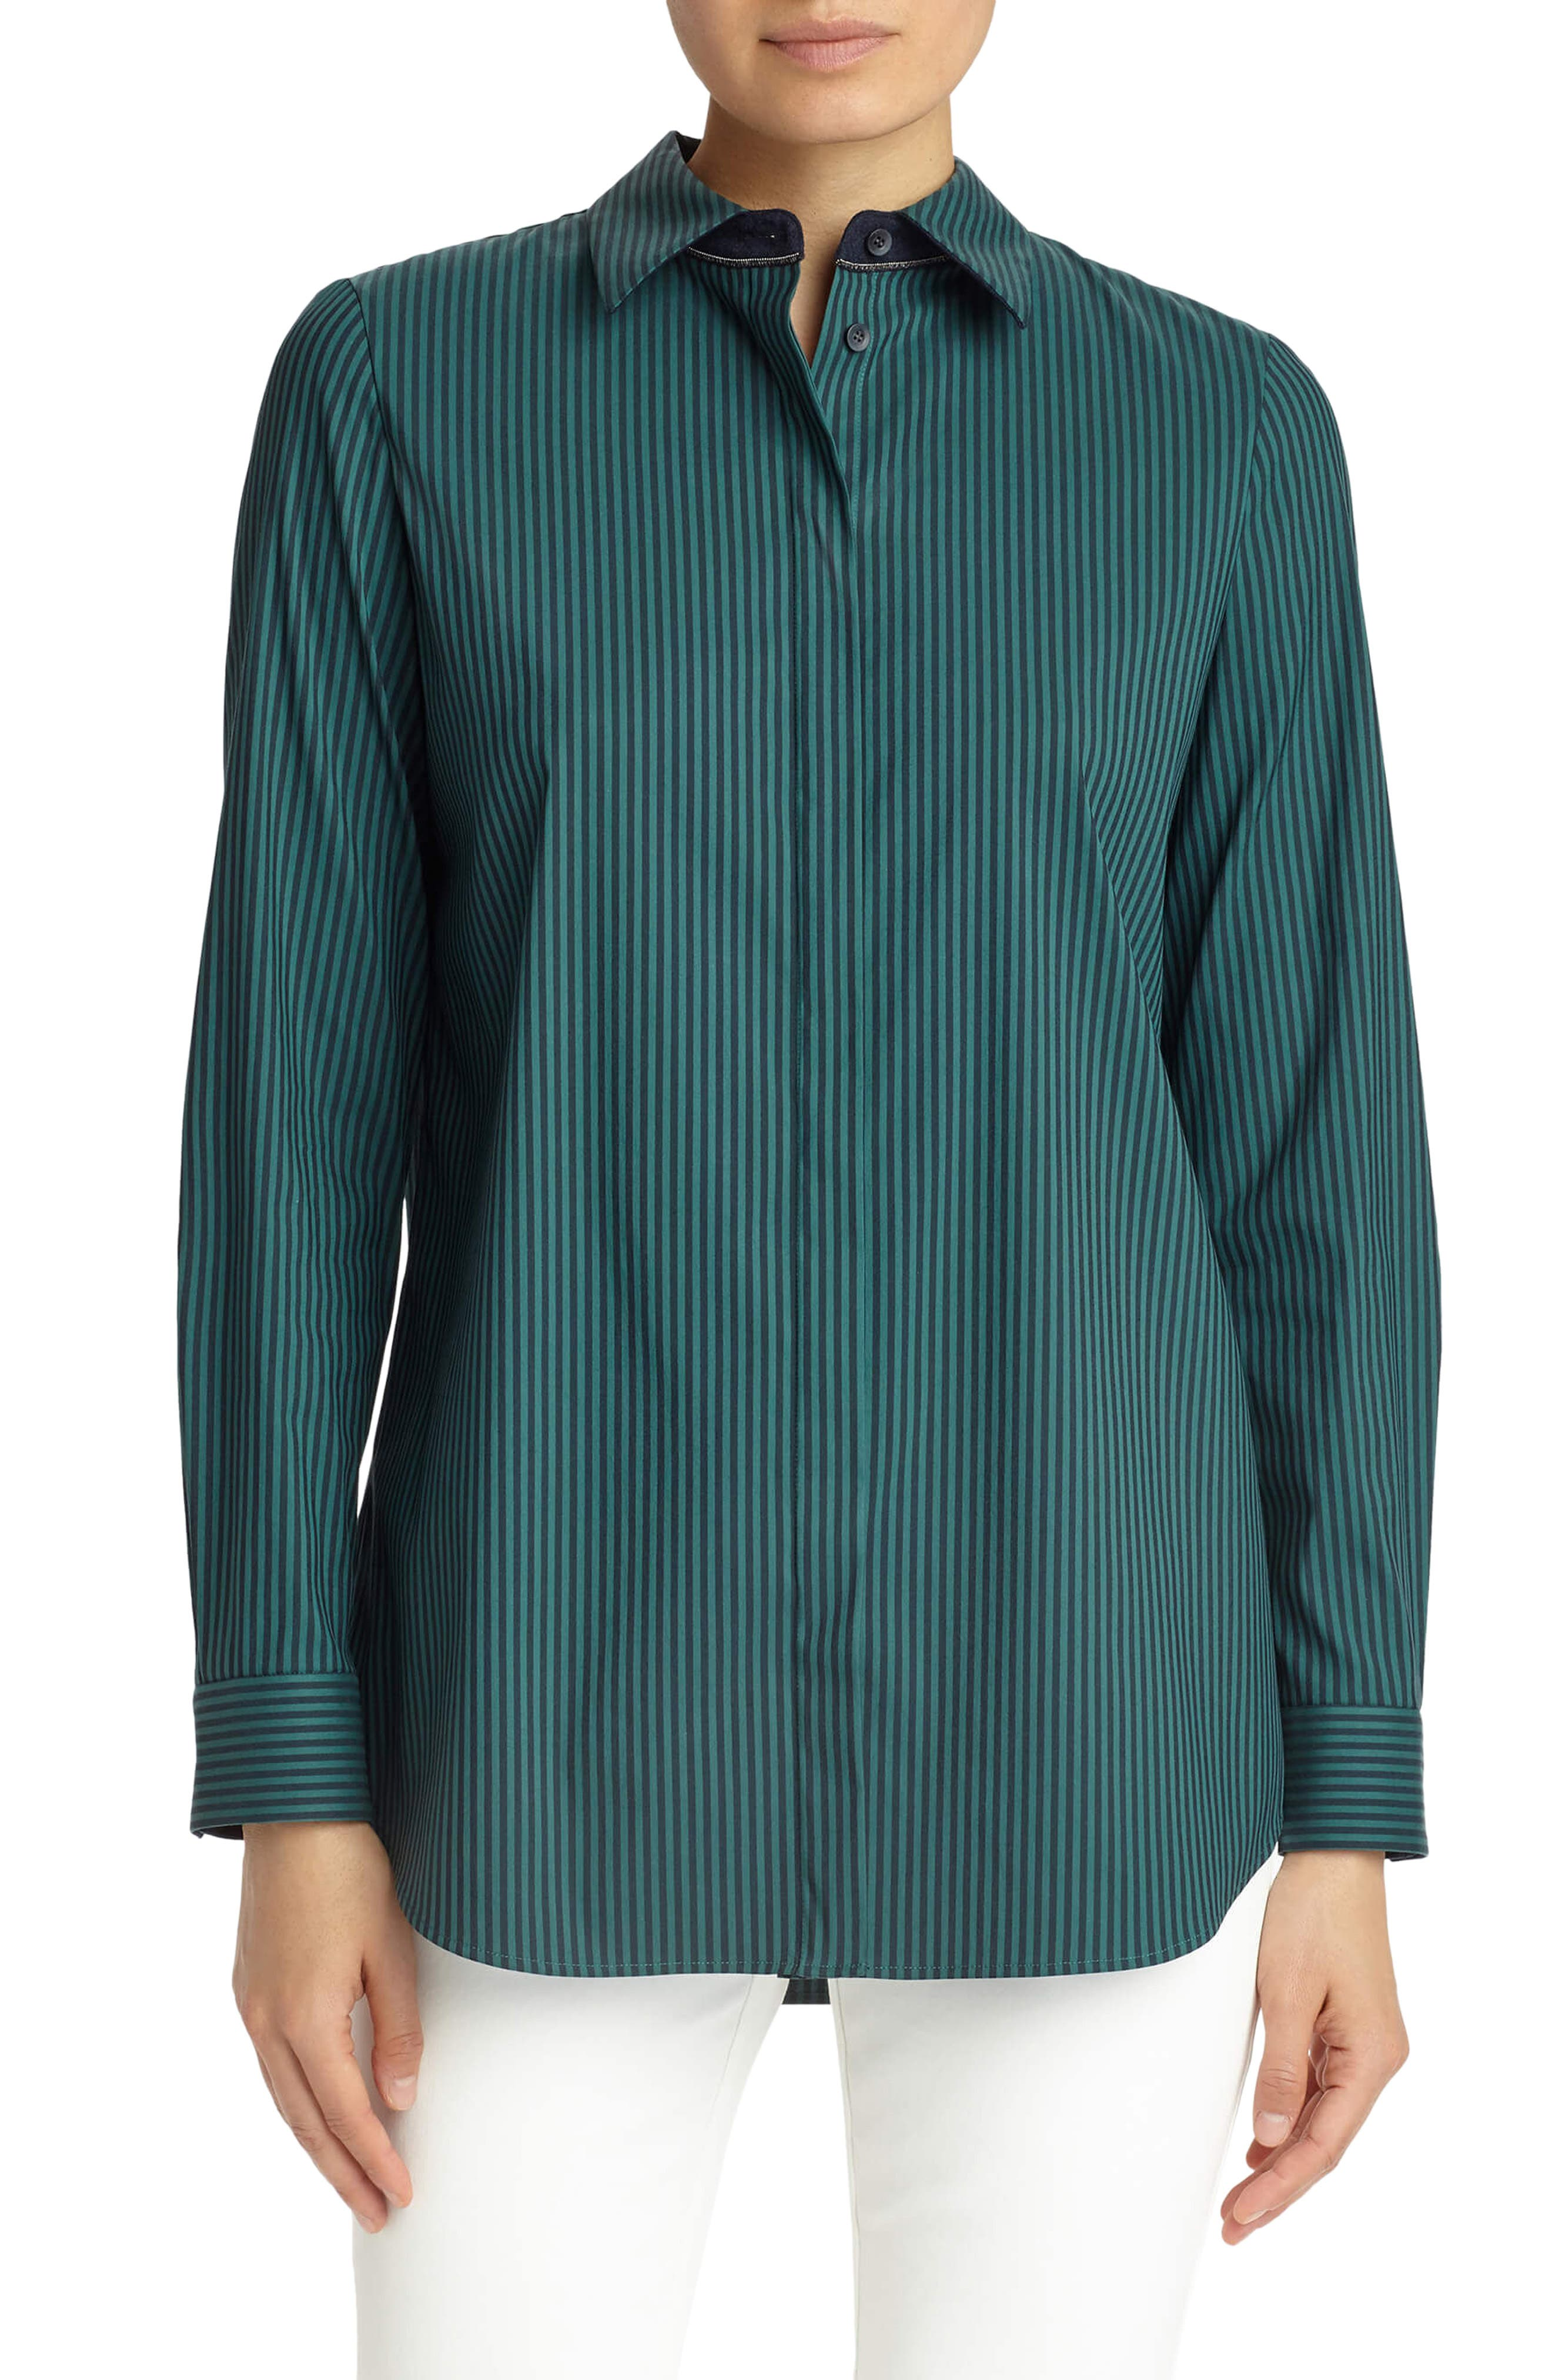 'Brody - Palace Stripe' Blouse,                             Main thumbnail 1, color,                             349